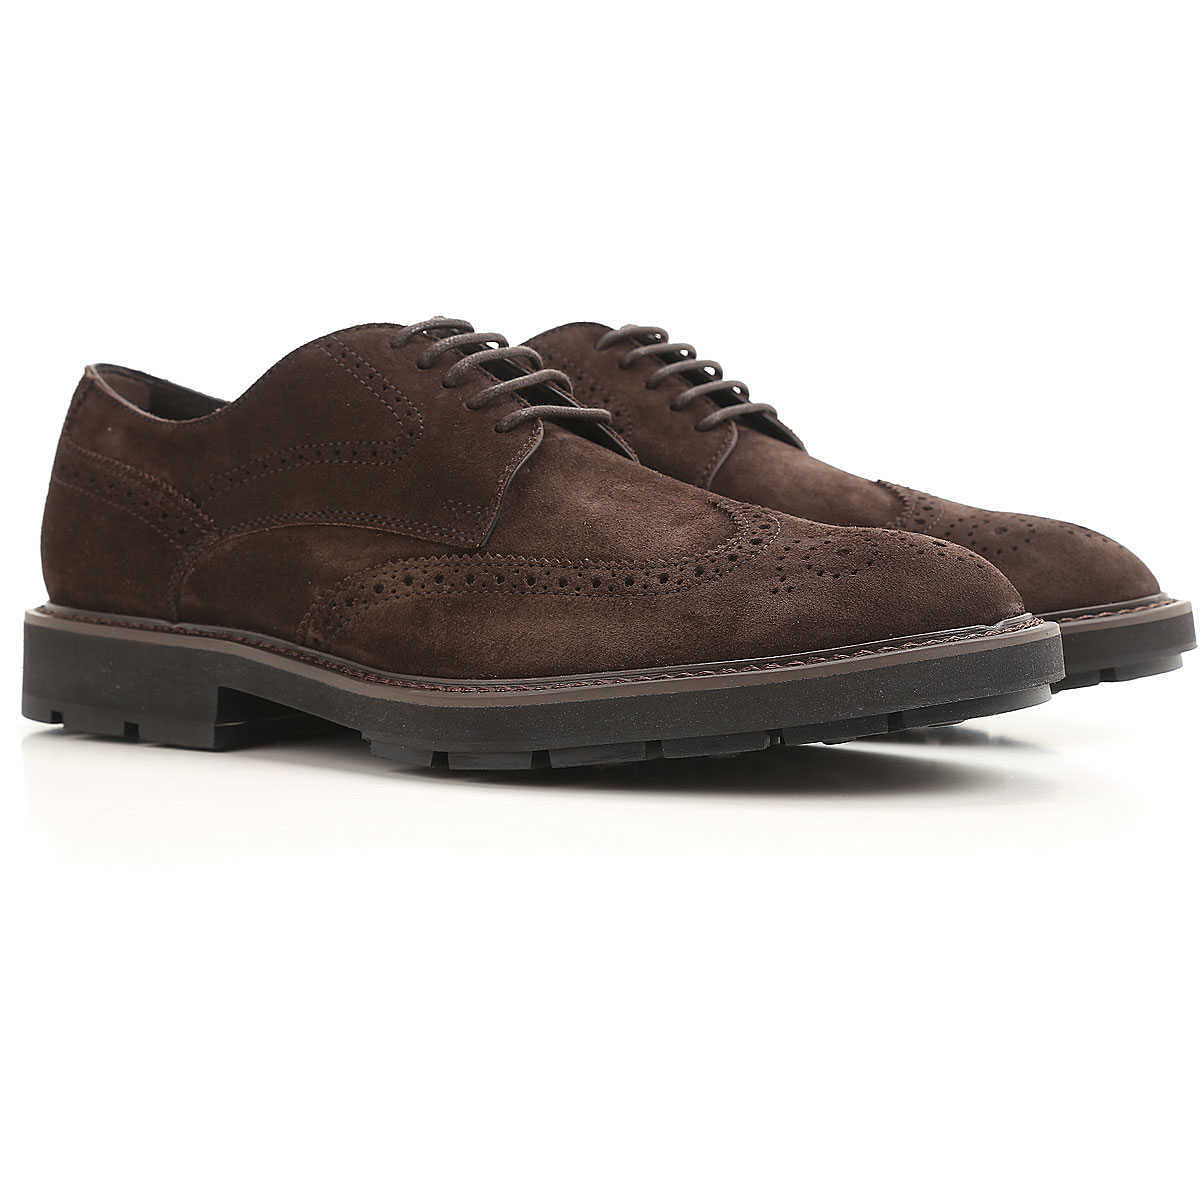 Tods Lace Up Shoes for Men Oxfords 10 5 5.5 6 6.5 7 7.5 9 9.5 Derbies and Brogues On Sale UK - GOOFASH